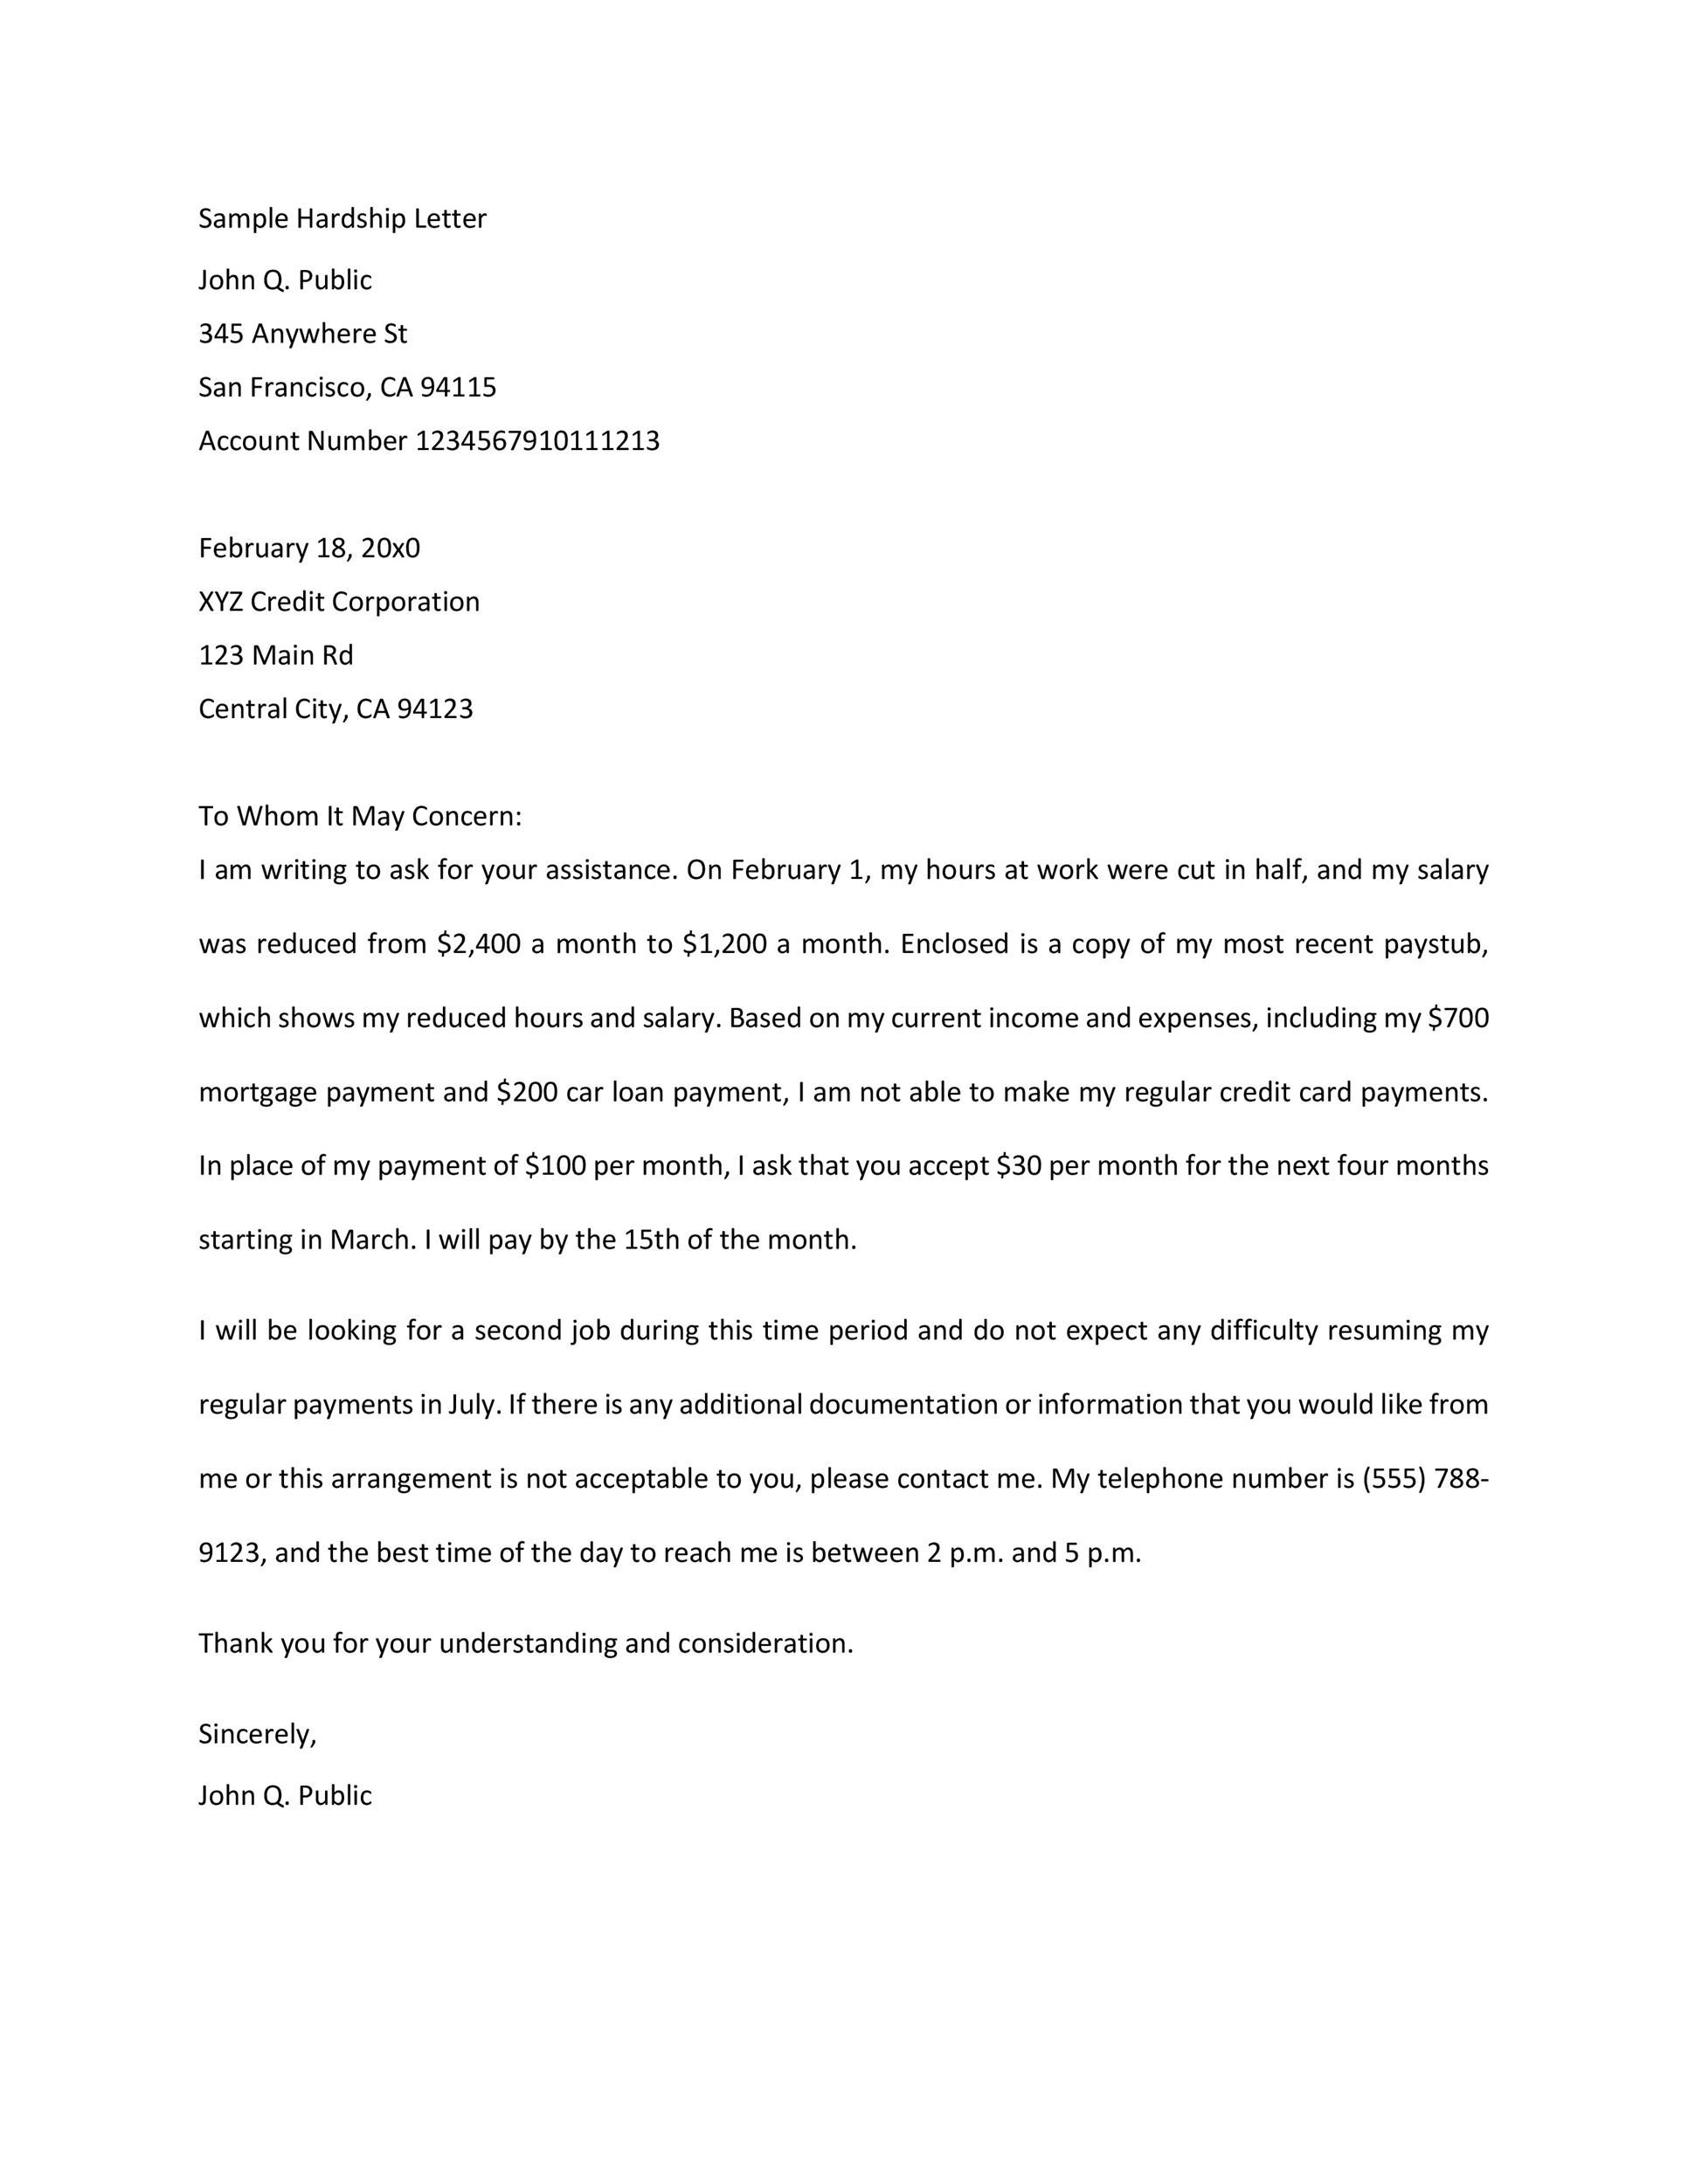 Free Hardship Letter Template 05